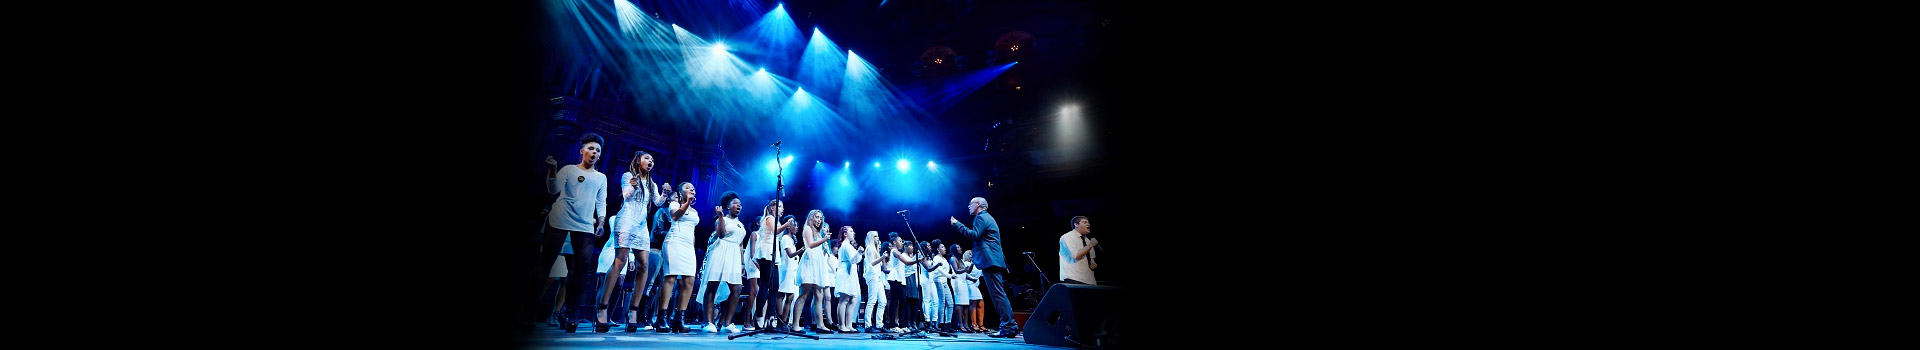 Music Of Youth tickets at the Royal Albert Hall